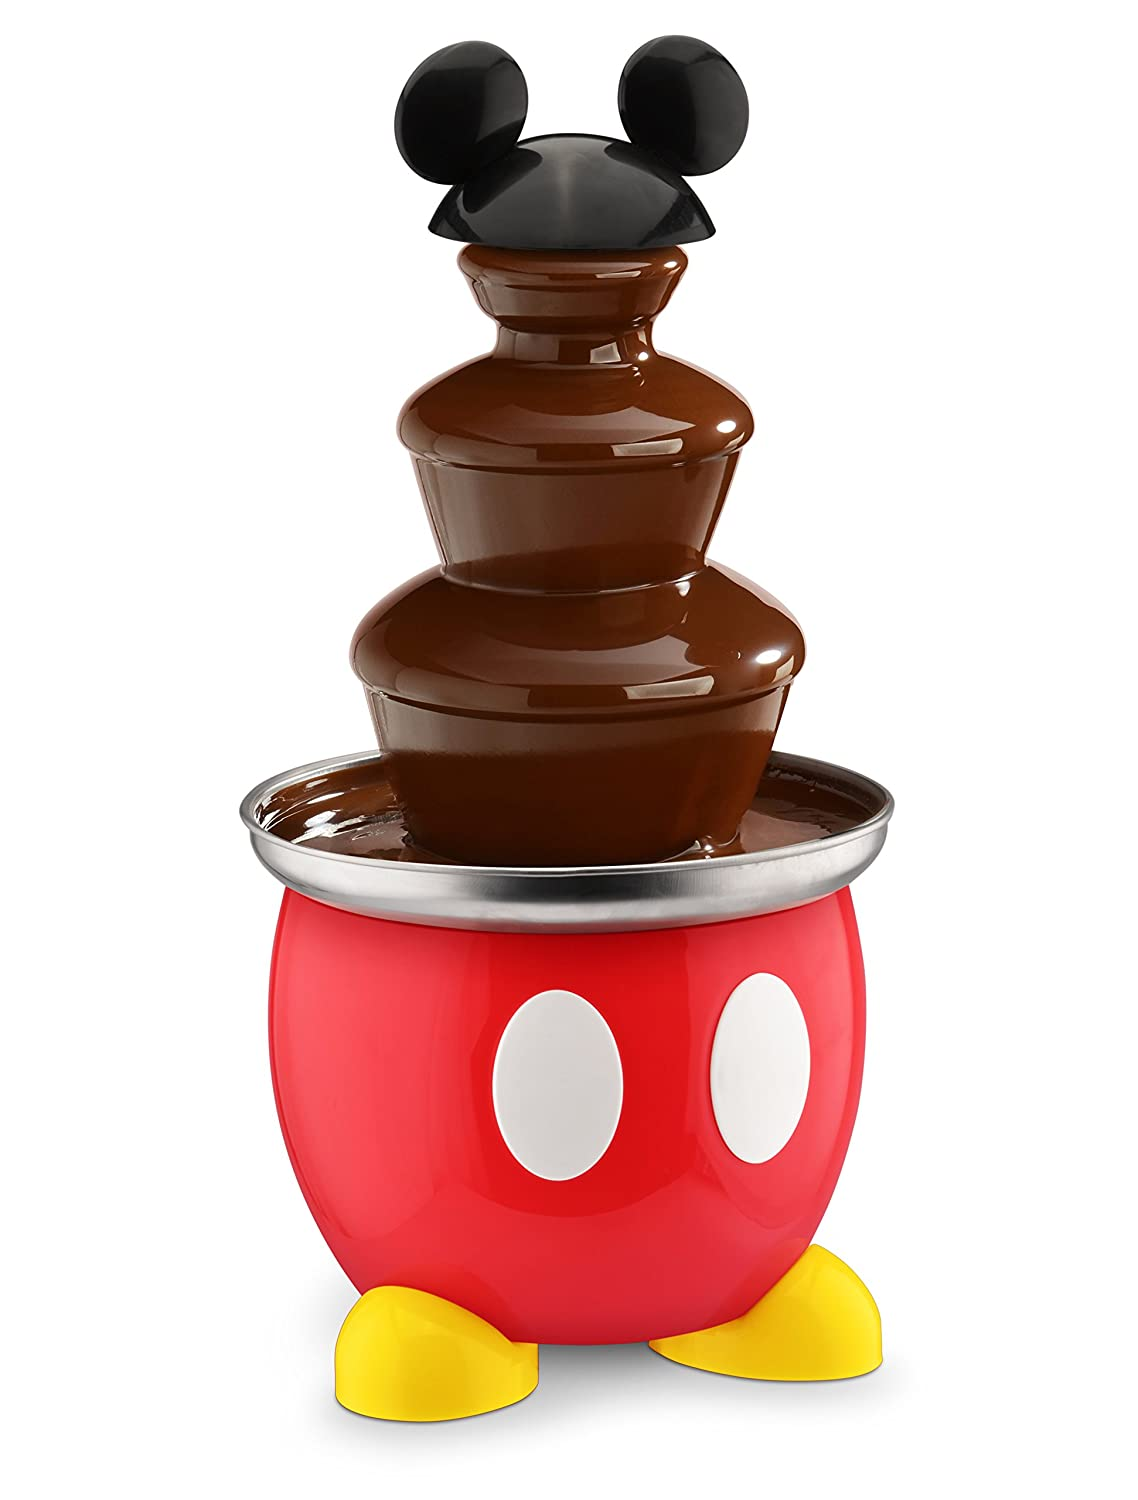 Top 10 Best Chocolate Fountains Review